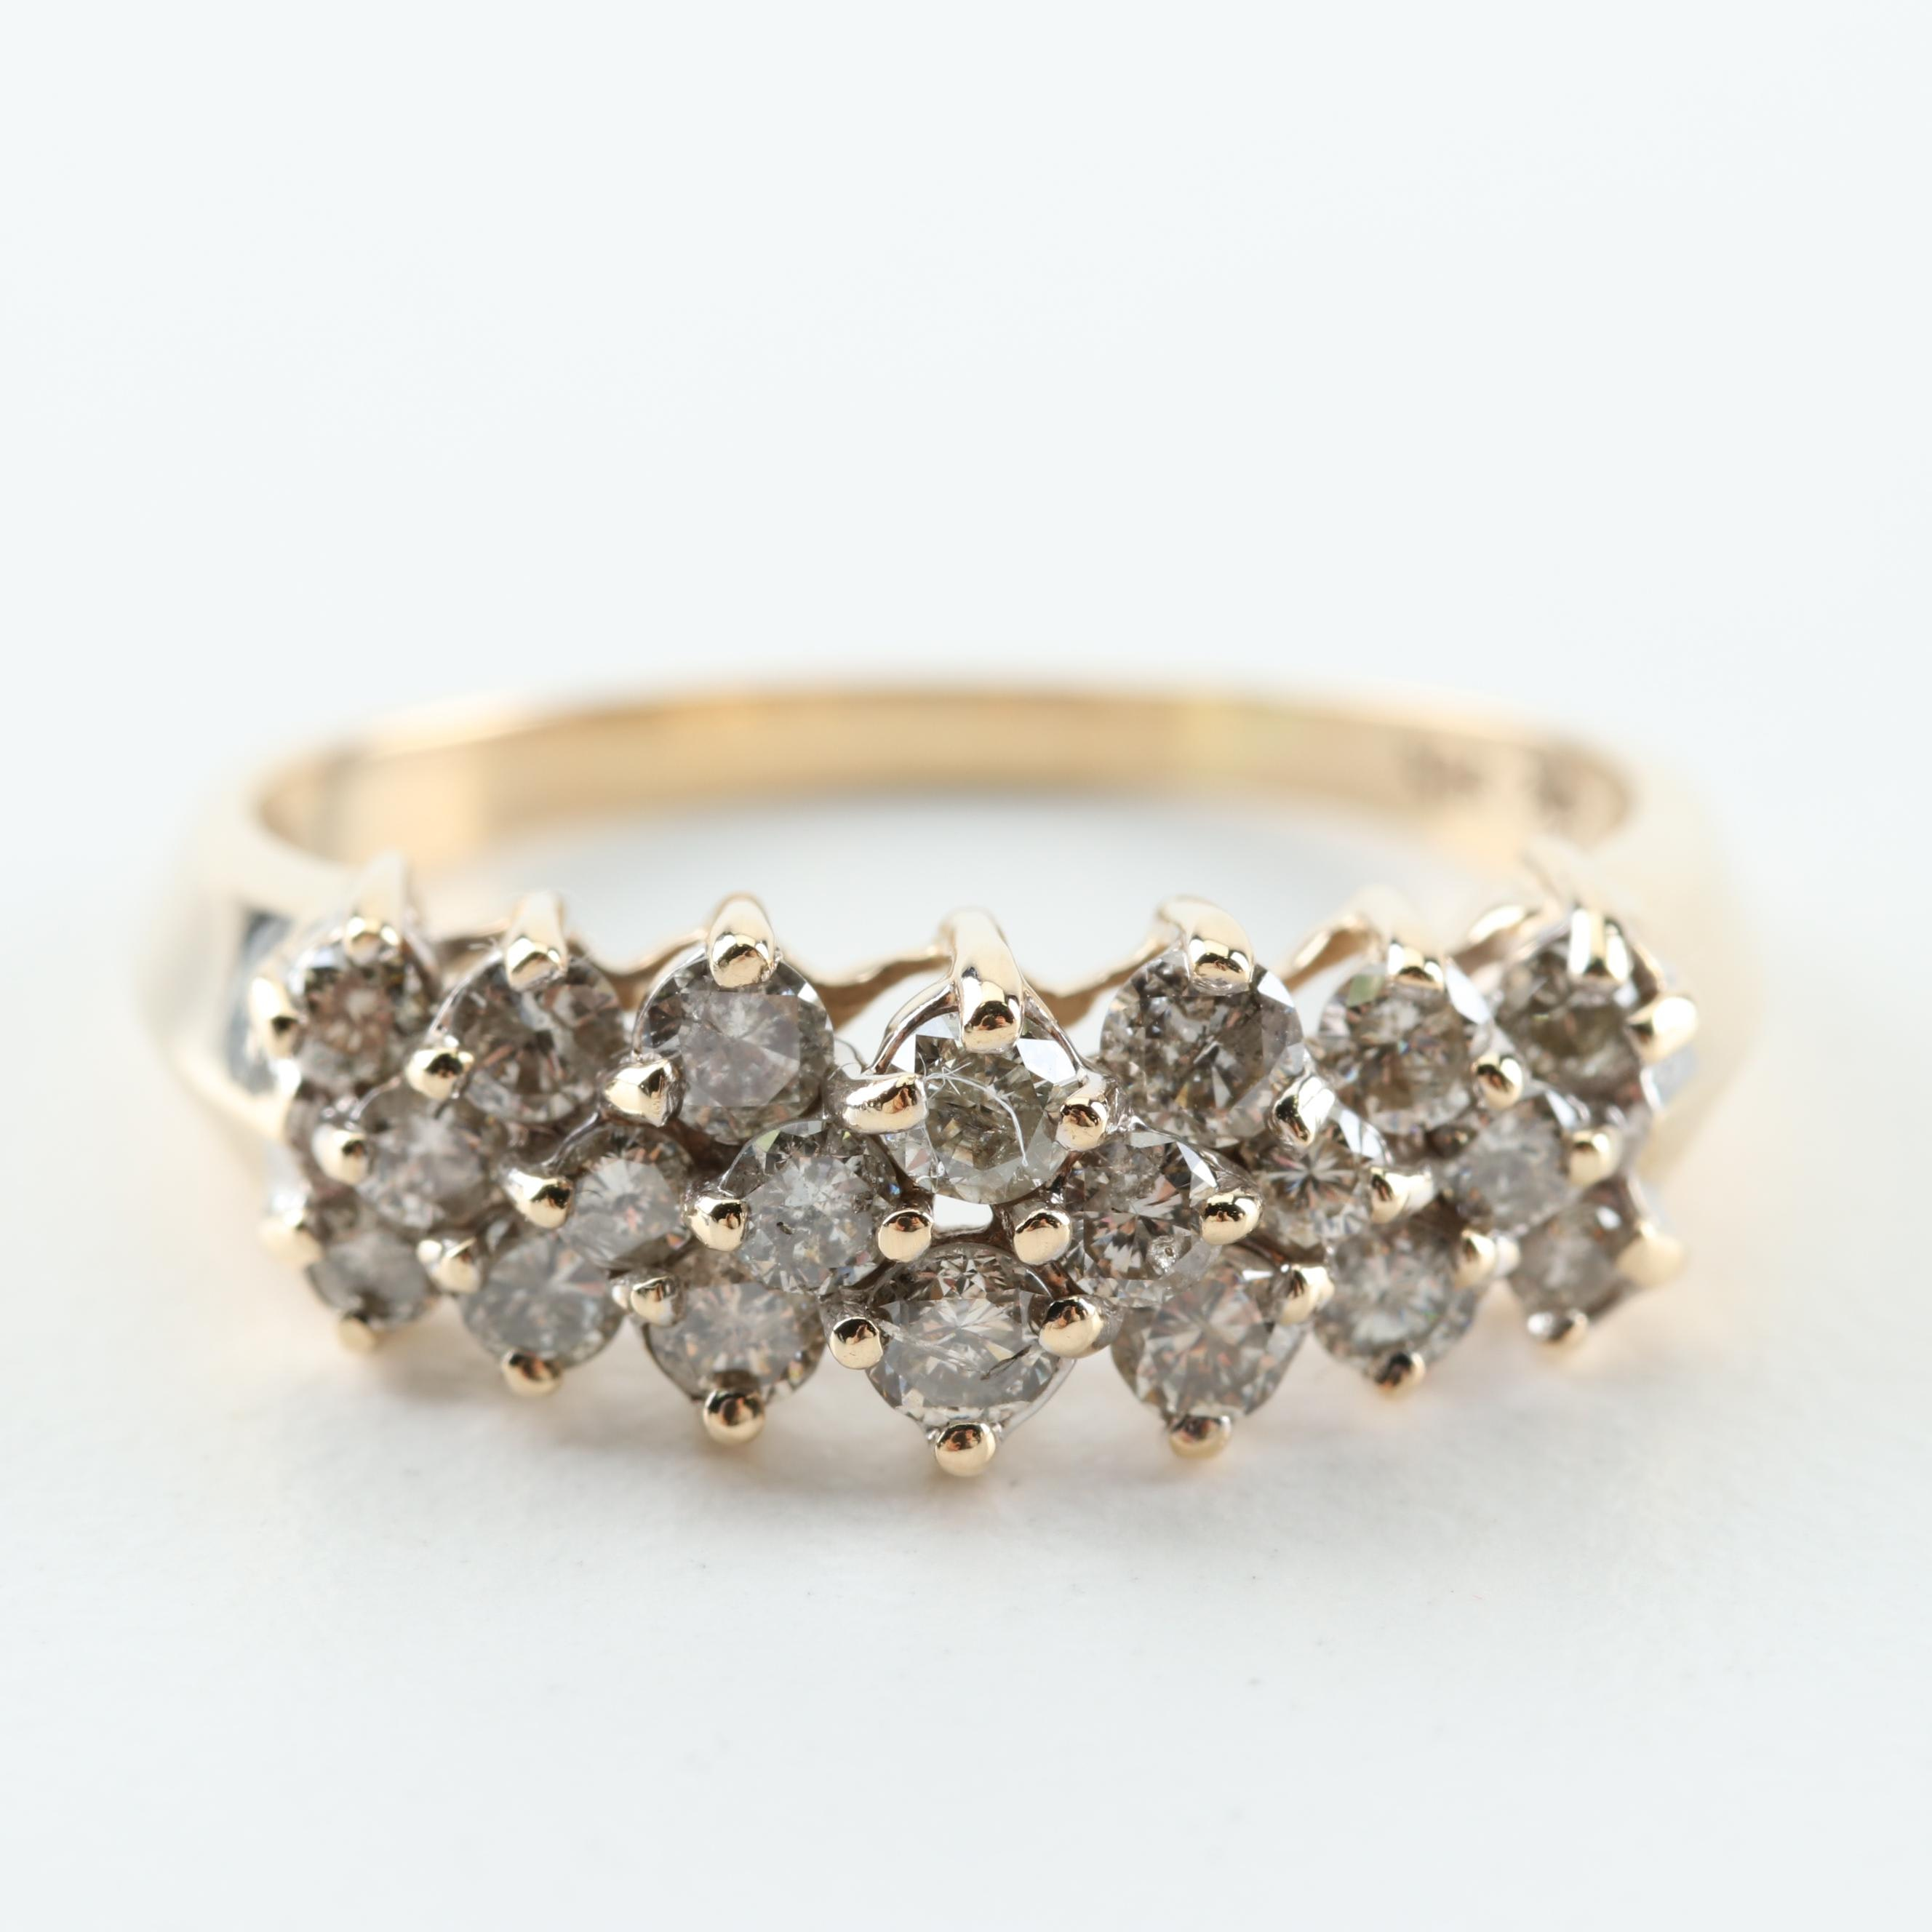 10K Yellow Gold and 1.02 CTW Diamond Ring